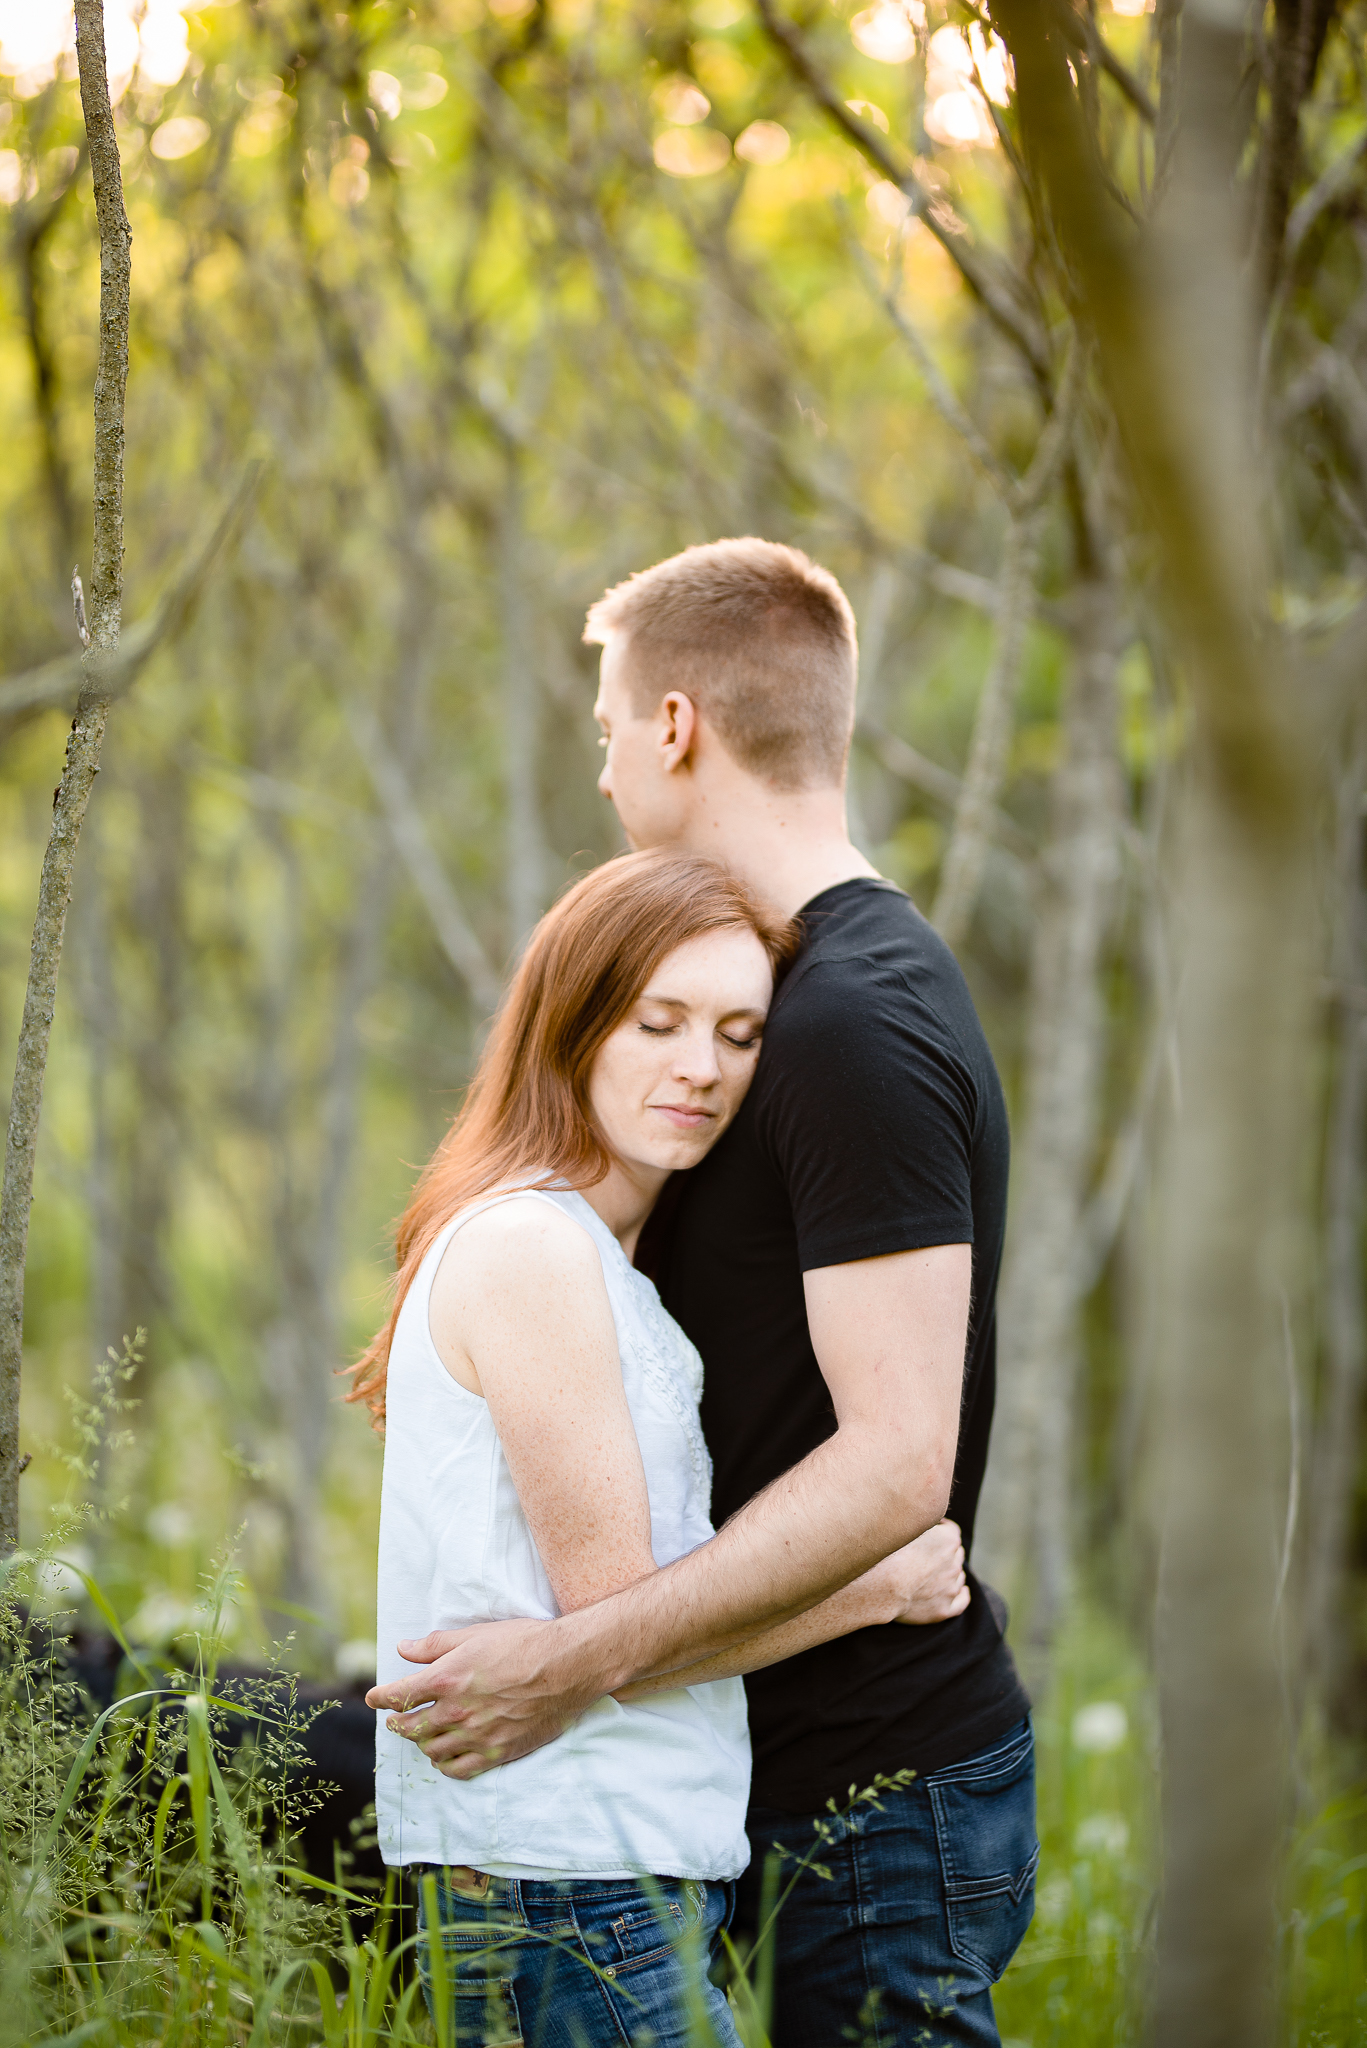 Couples299NaomiLuciennePhotography062019-Edit.jpg